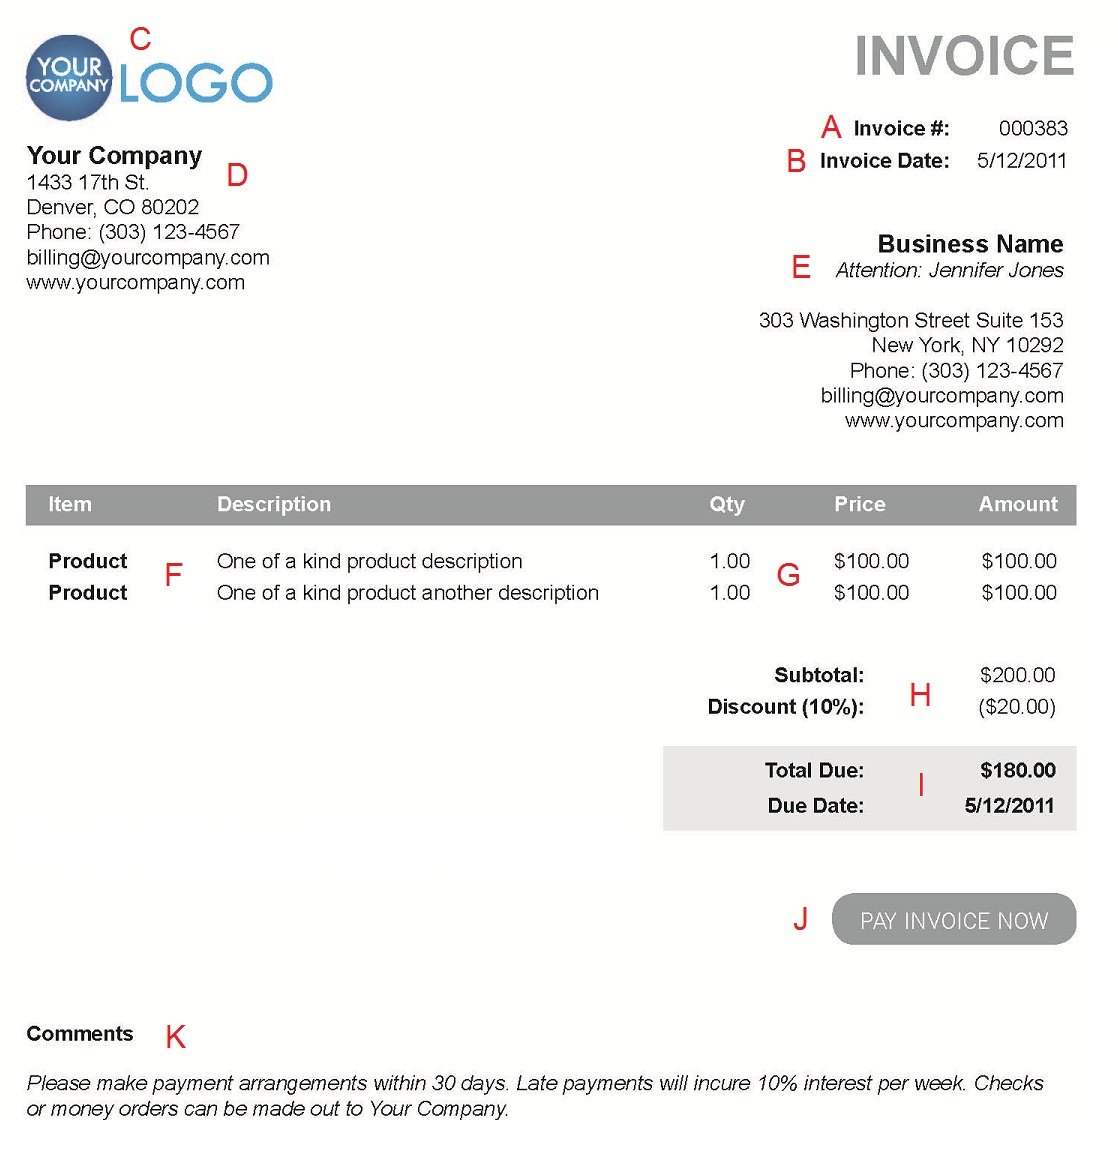 Ultrablogus  Prepossessing The  Different Sections Of An Electronic Payment Invoice With Foxy A  With Cute Final Invoice Sample Also Logo Design Invoice In Addition Commercial Invoice Requirements And Sample Invoice For Legal Services As Well As Ups Invoice Payment Additionally Purpose Of An Invoice From Paysimplecom With Ultrablogus  Foxy The  Different Sections Of An Electronic Payment Invoice With Cute A  And Prepossessing Final Invoice Sample Also Logo Design Invoice In Addition Commercial Invoice Requirements From Paysimplecom